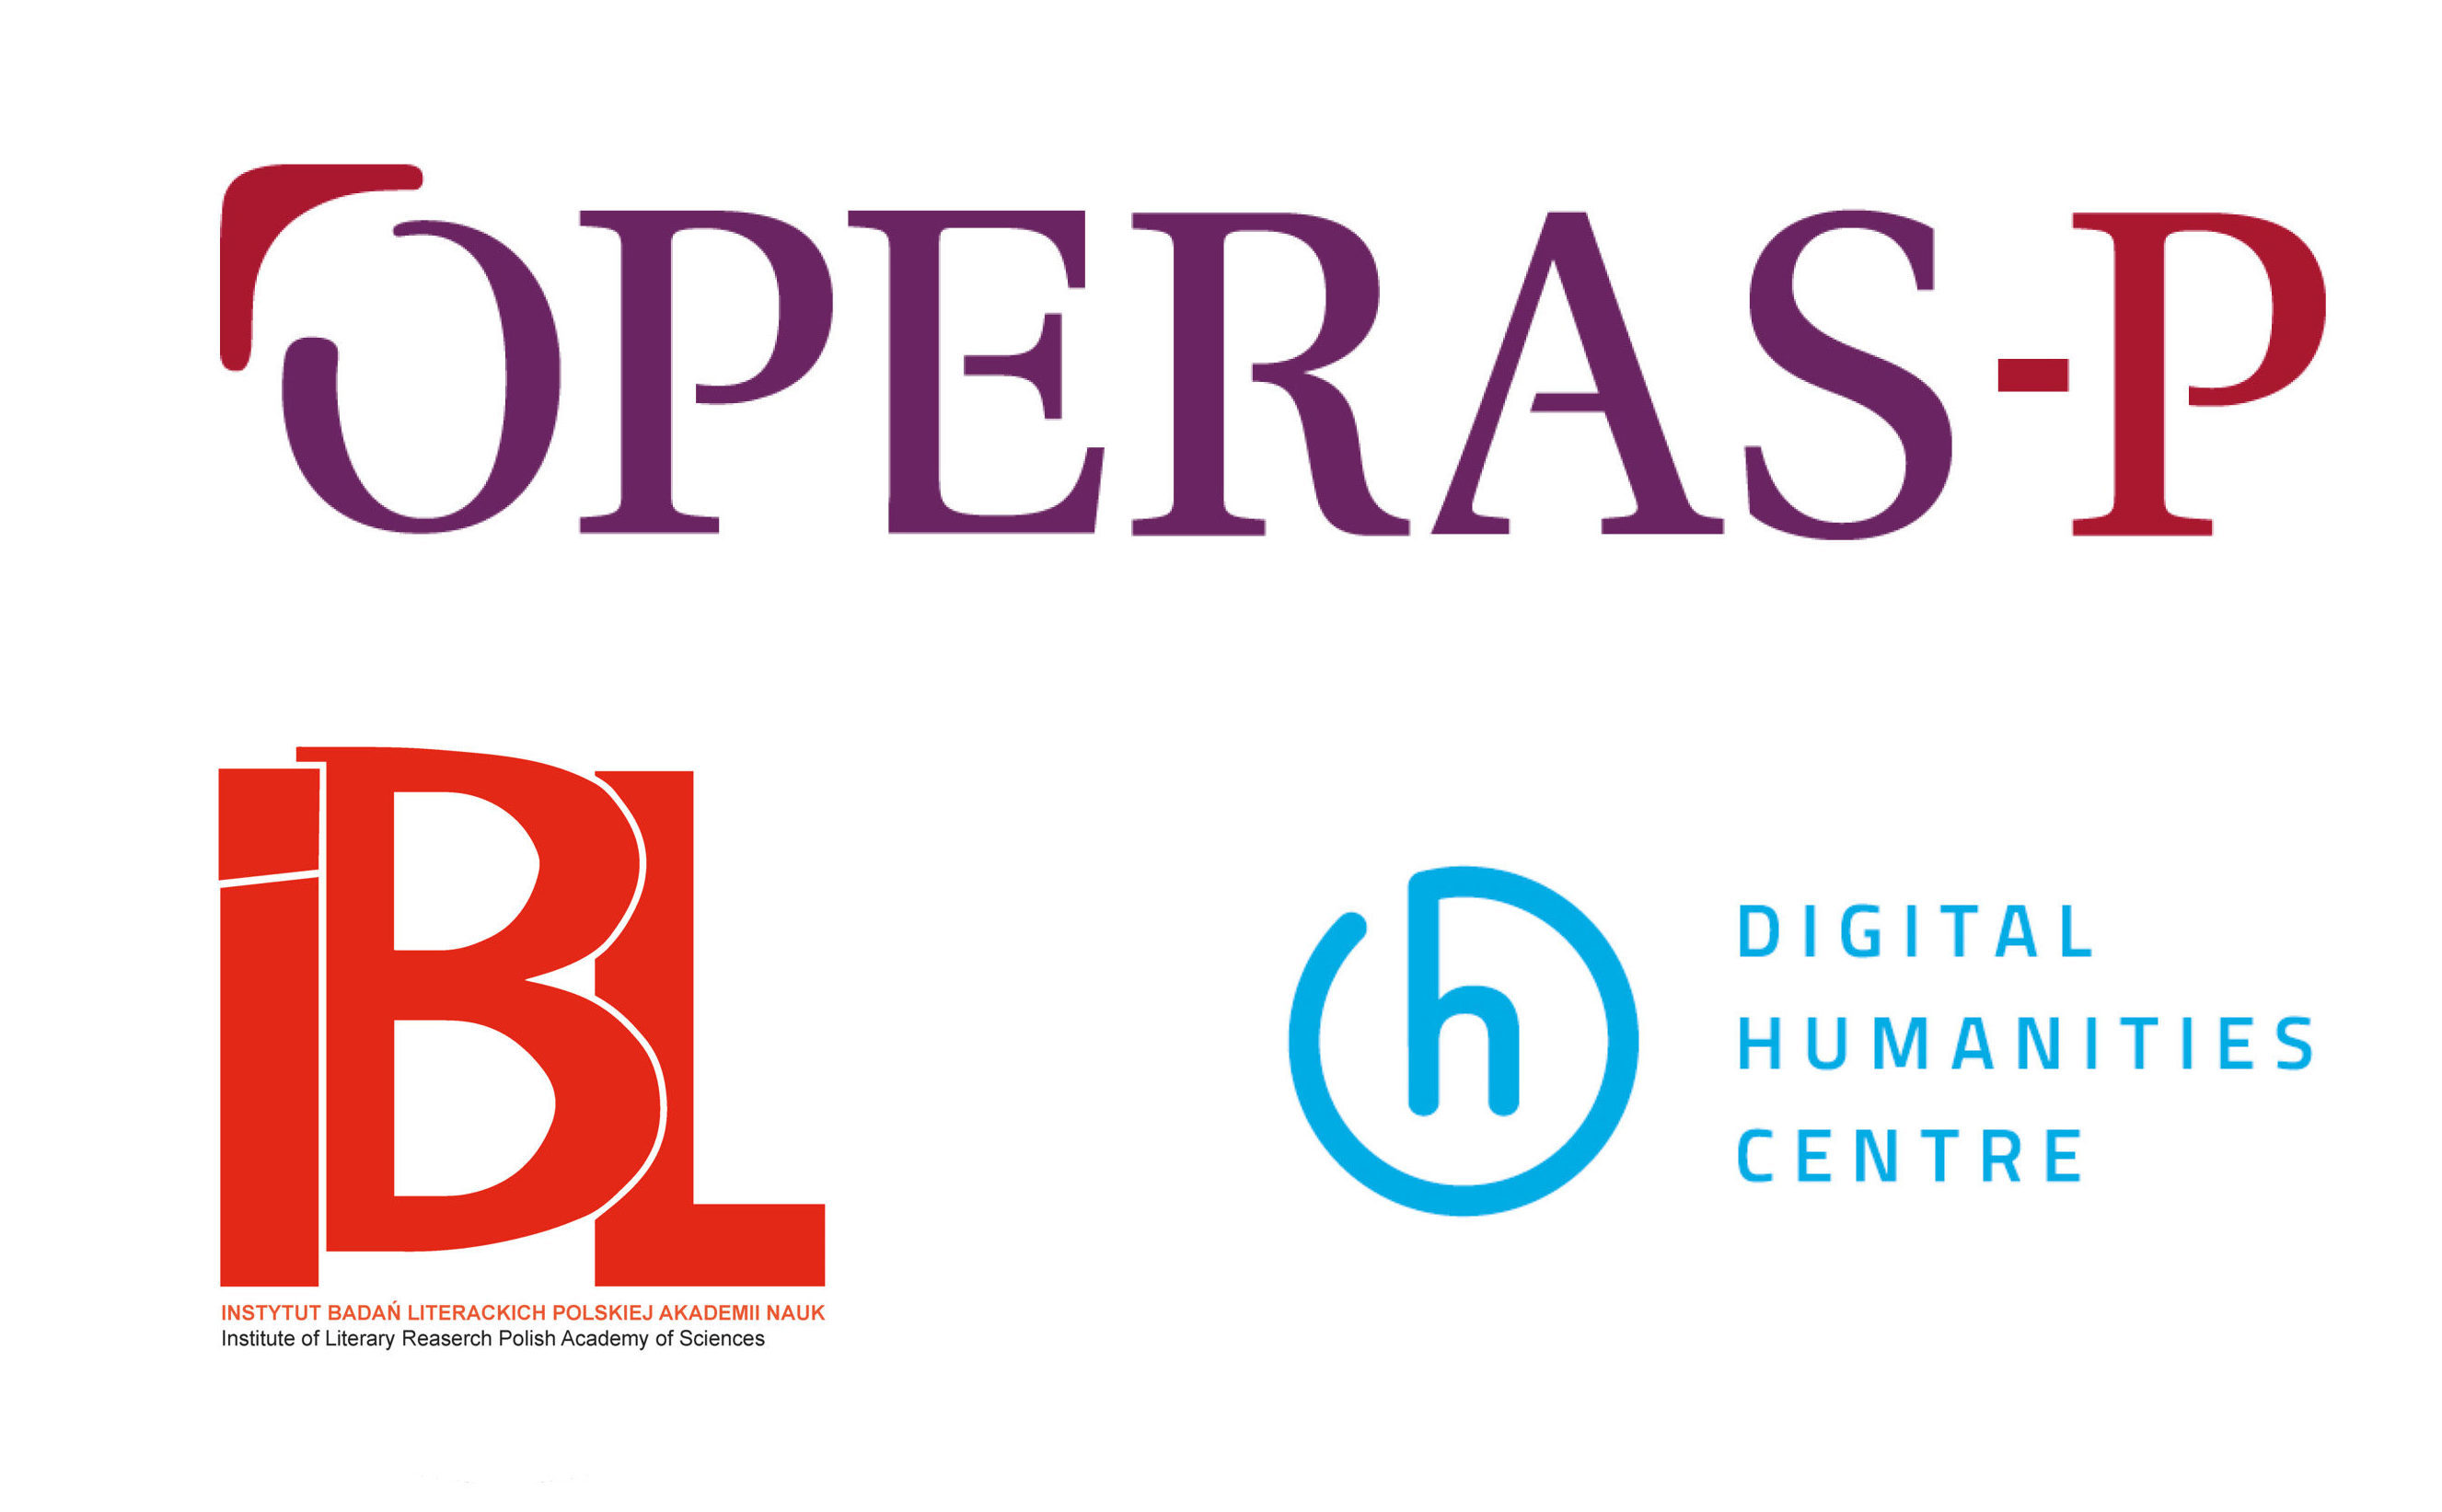 Logos IBL and Digital Humanities Centre small